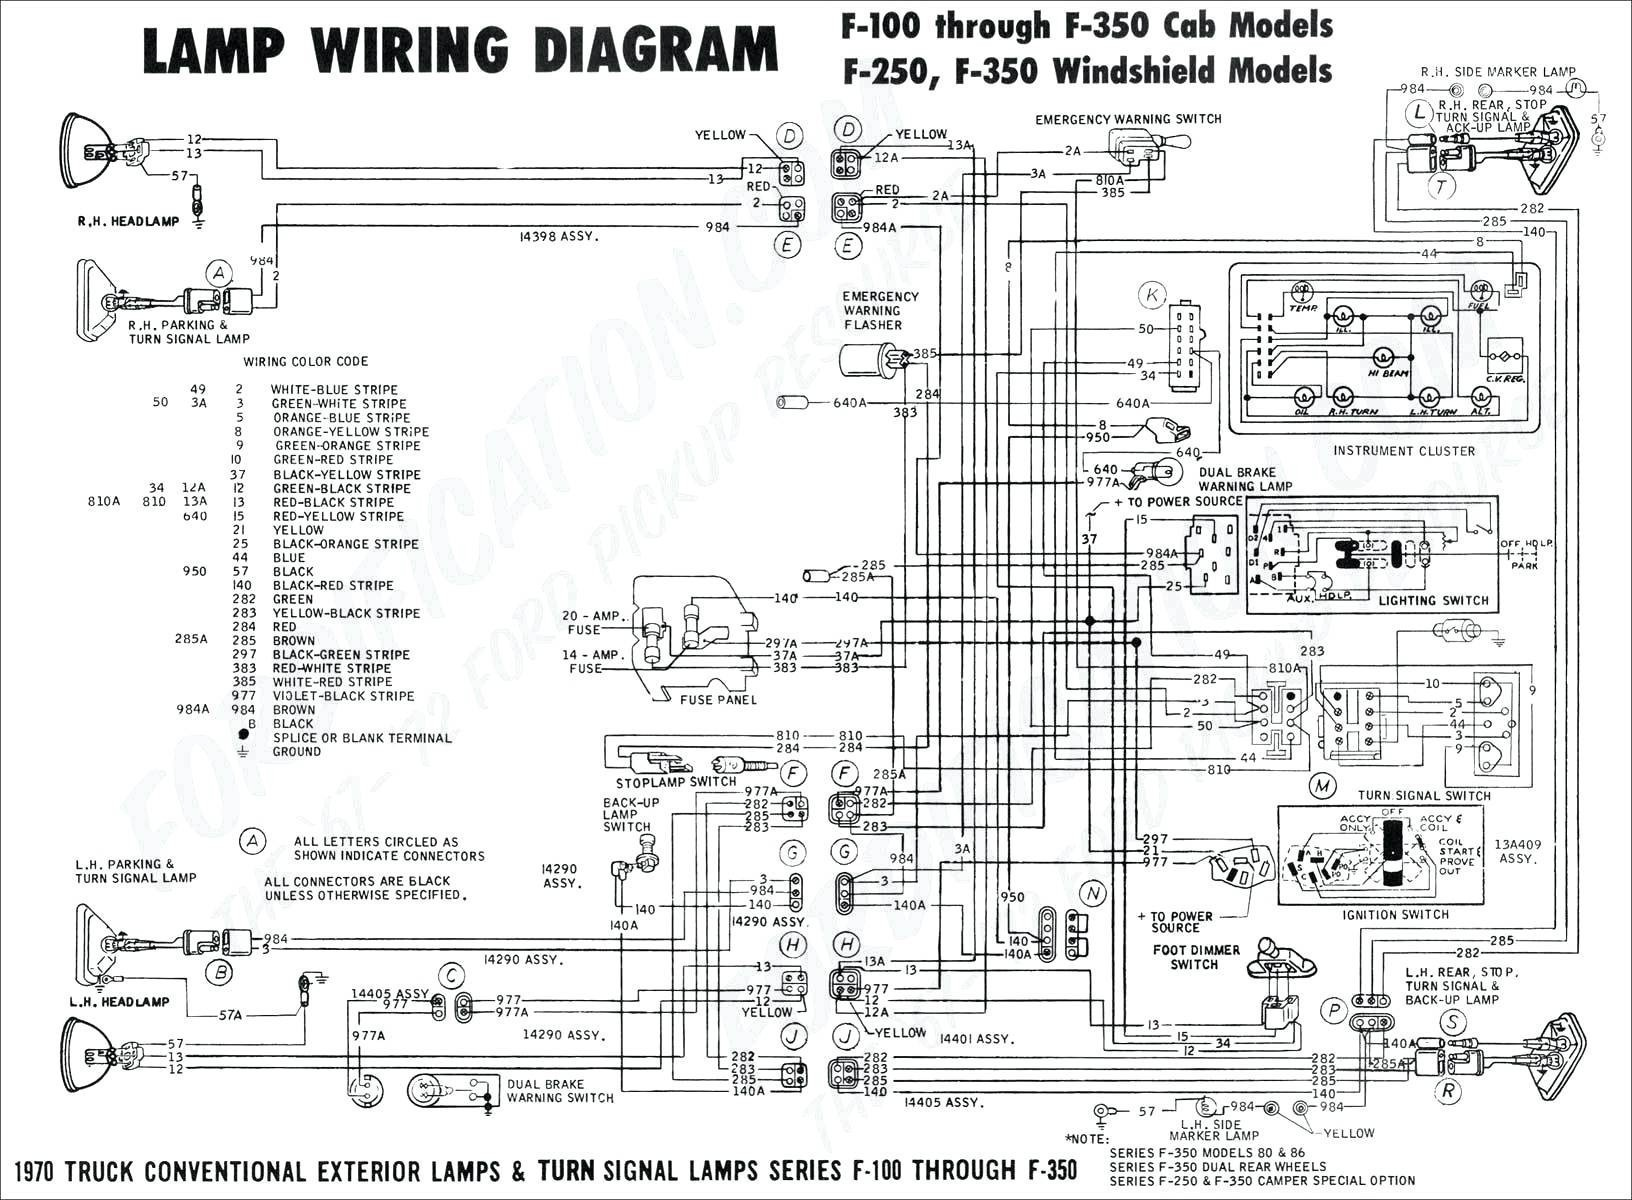 2002 Saturn Sl2 Engine Diagram My Wiring Diagram